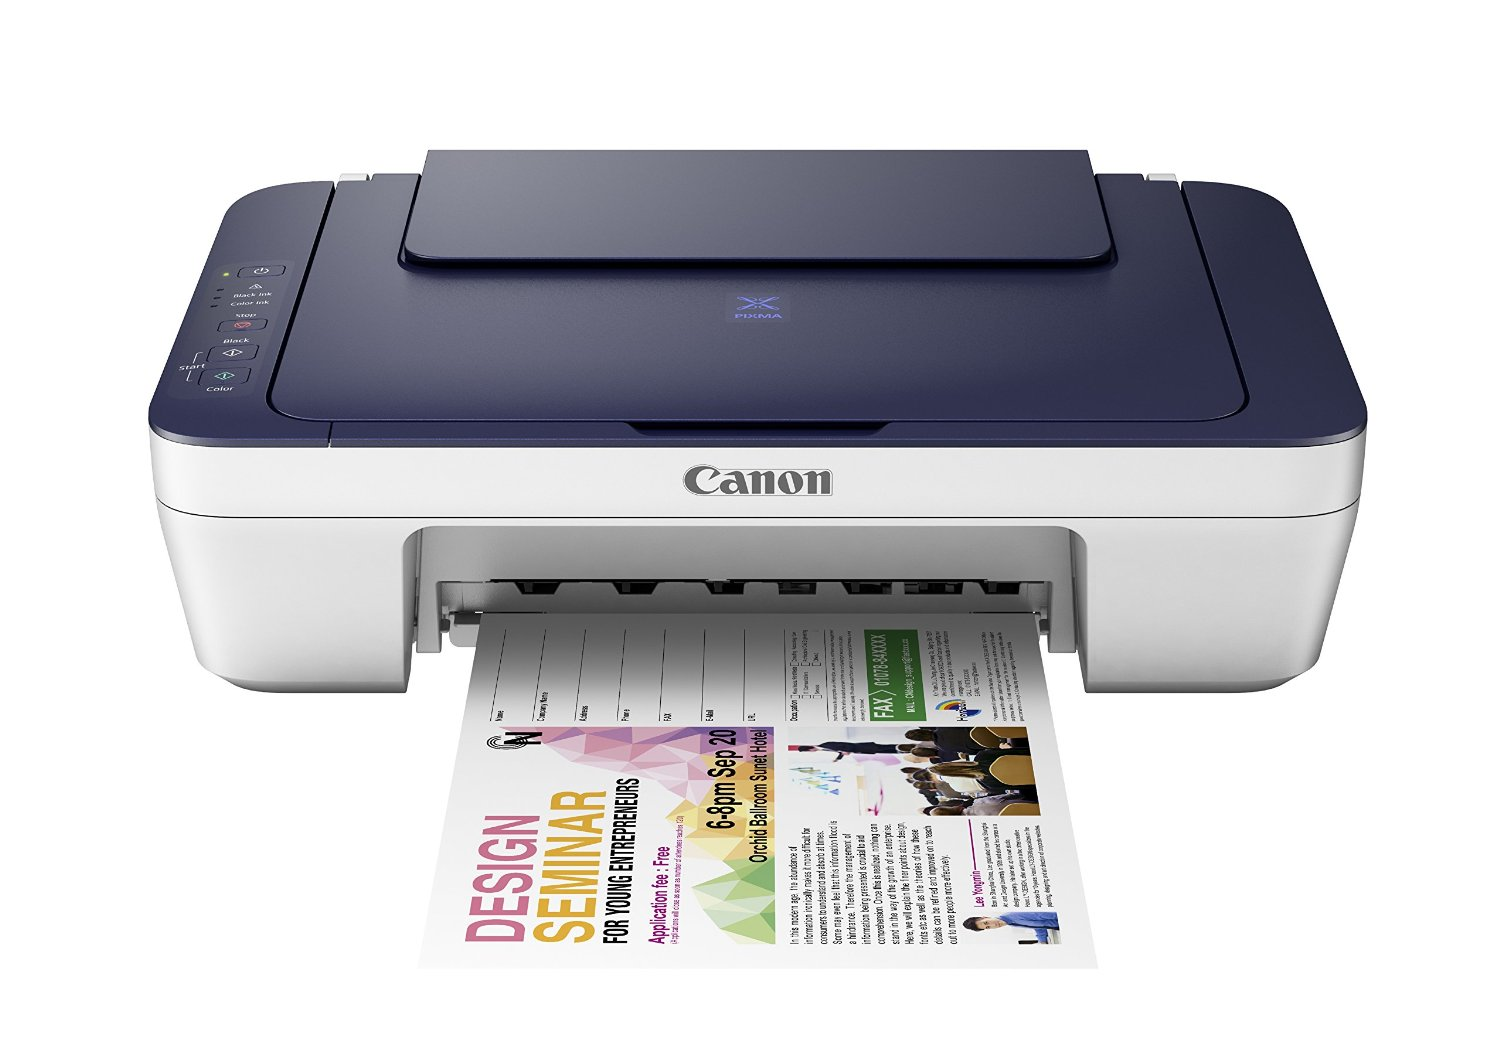 Canon Pixma MG2577s All-in-One InkJet Printer (Blue/White) for Rs 2499 (32% off)